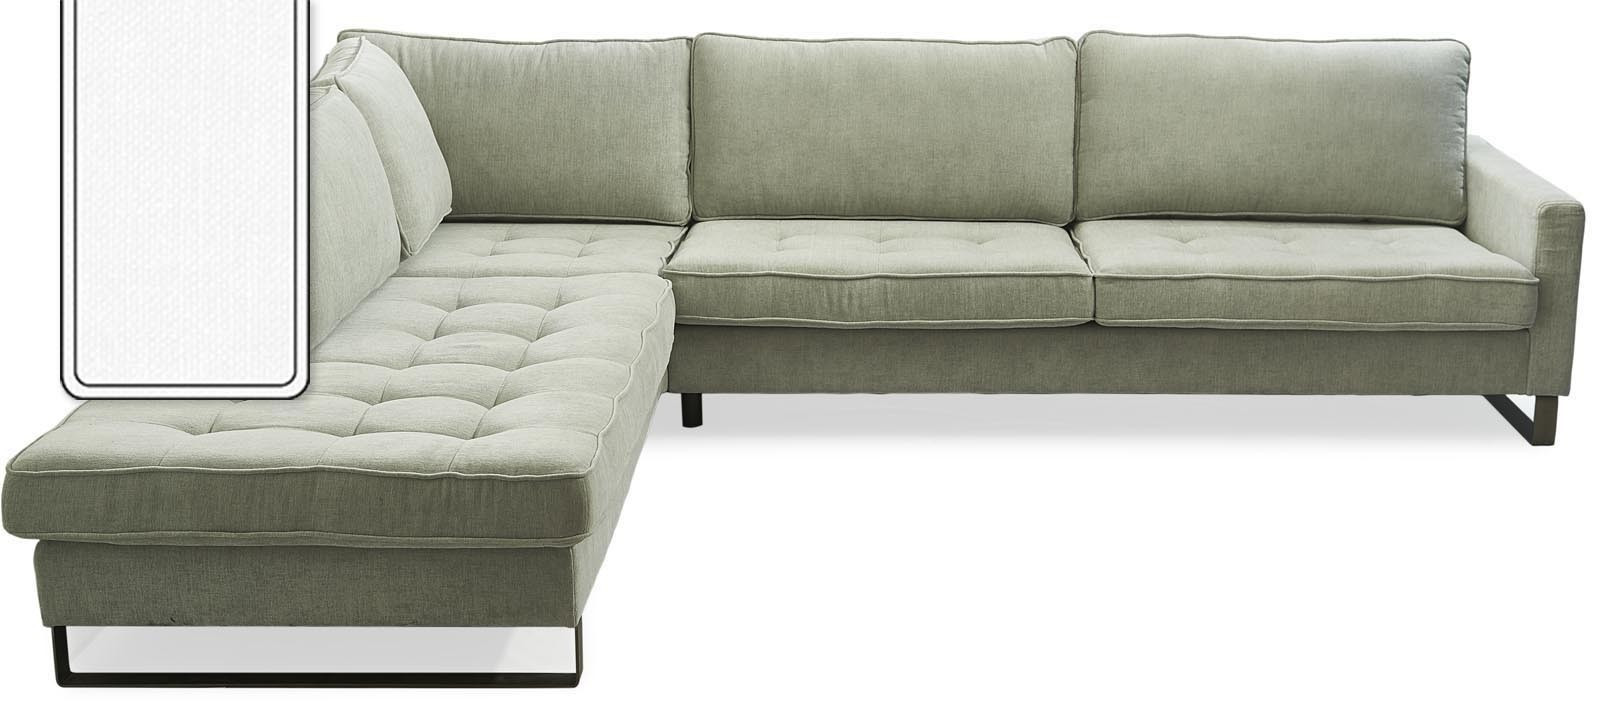 west houston corner sofa chaise longue left cotton white rivi ra maison. Black Bedroom Furniture Sets. Home Design Ideas